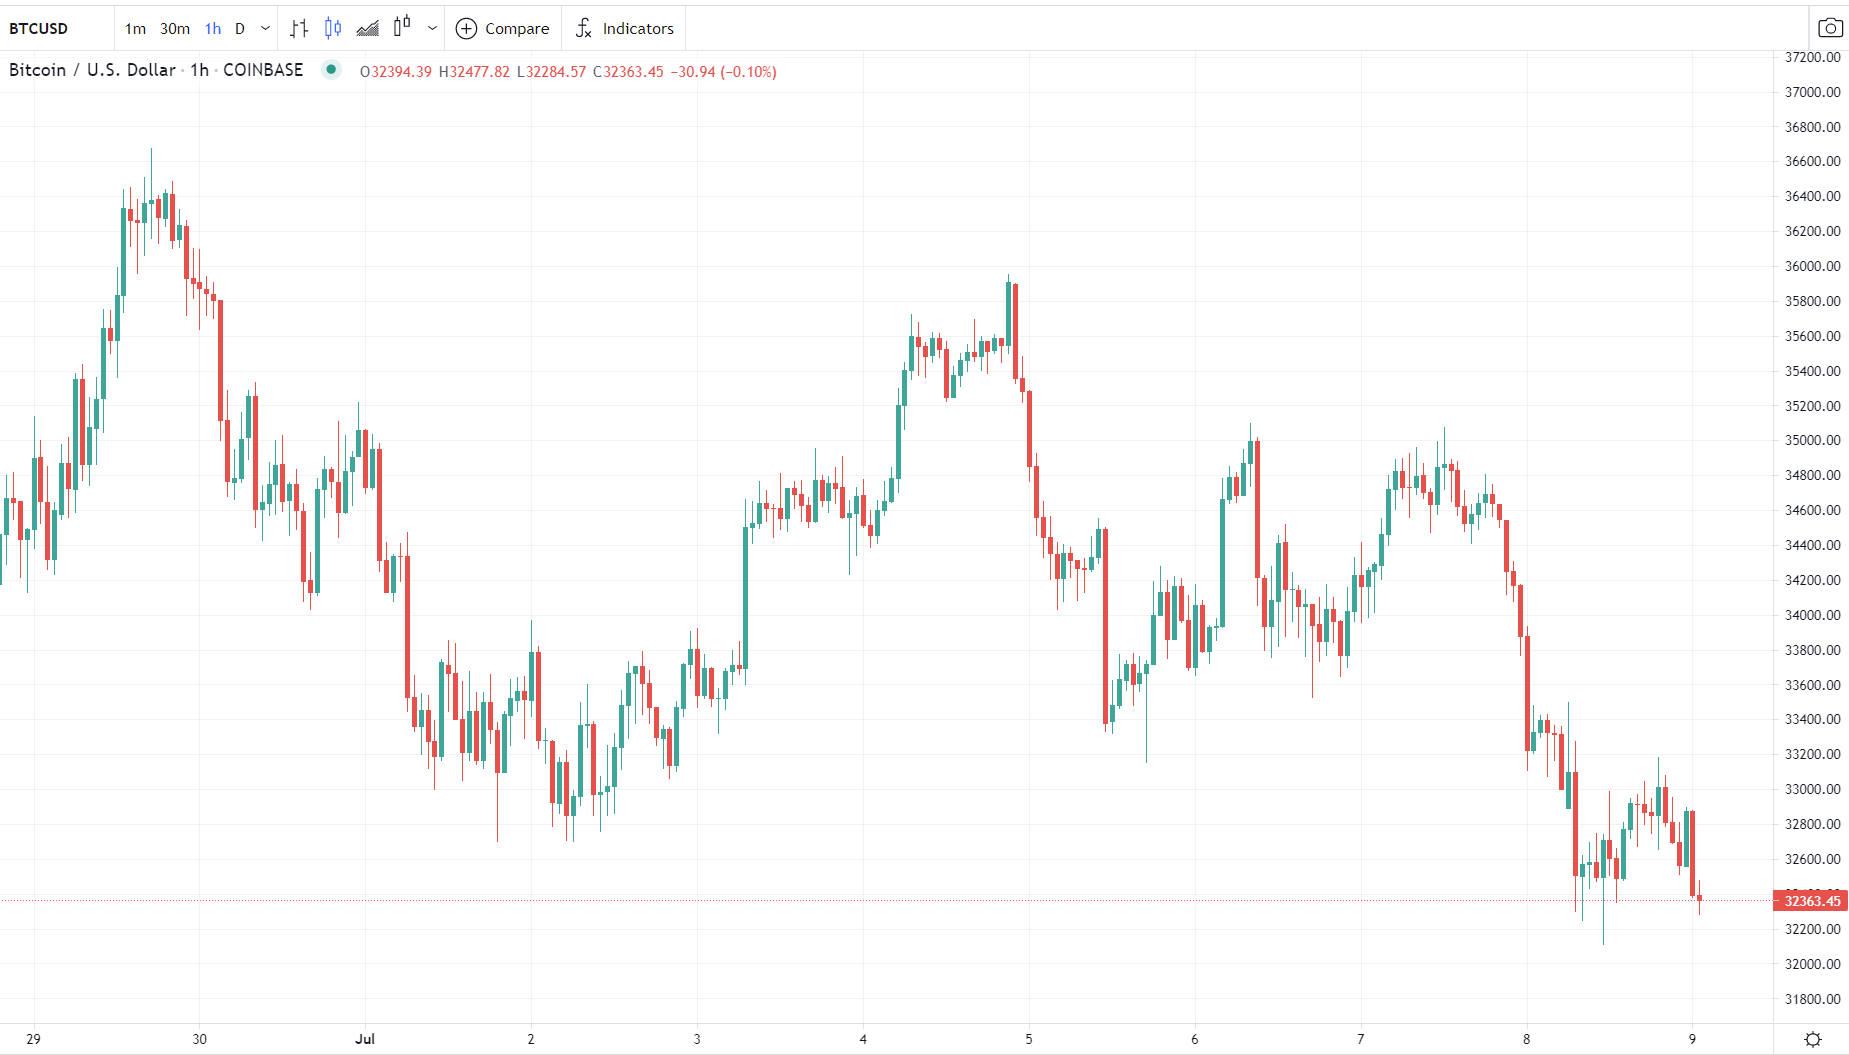 BTC/USD is looking on the heavy side.